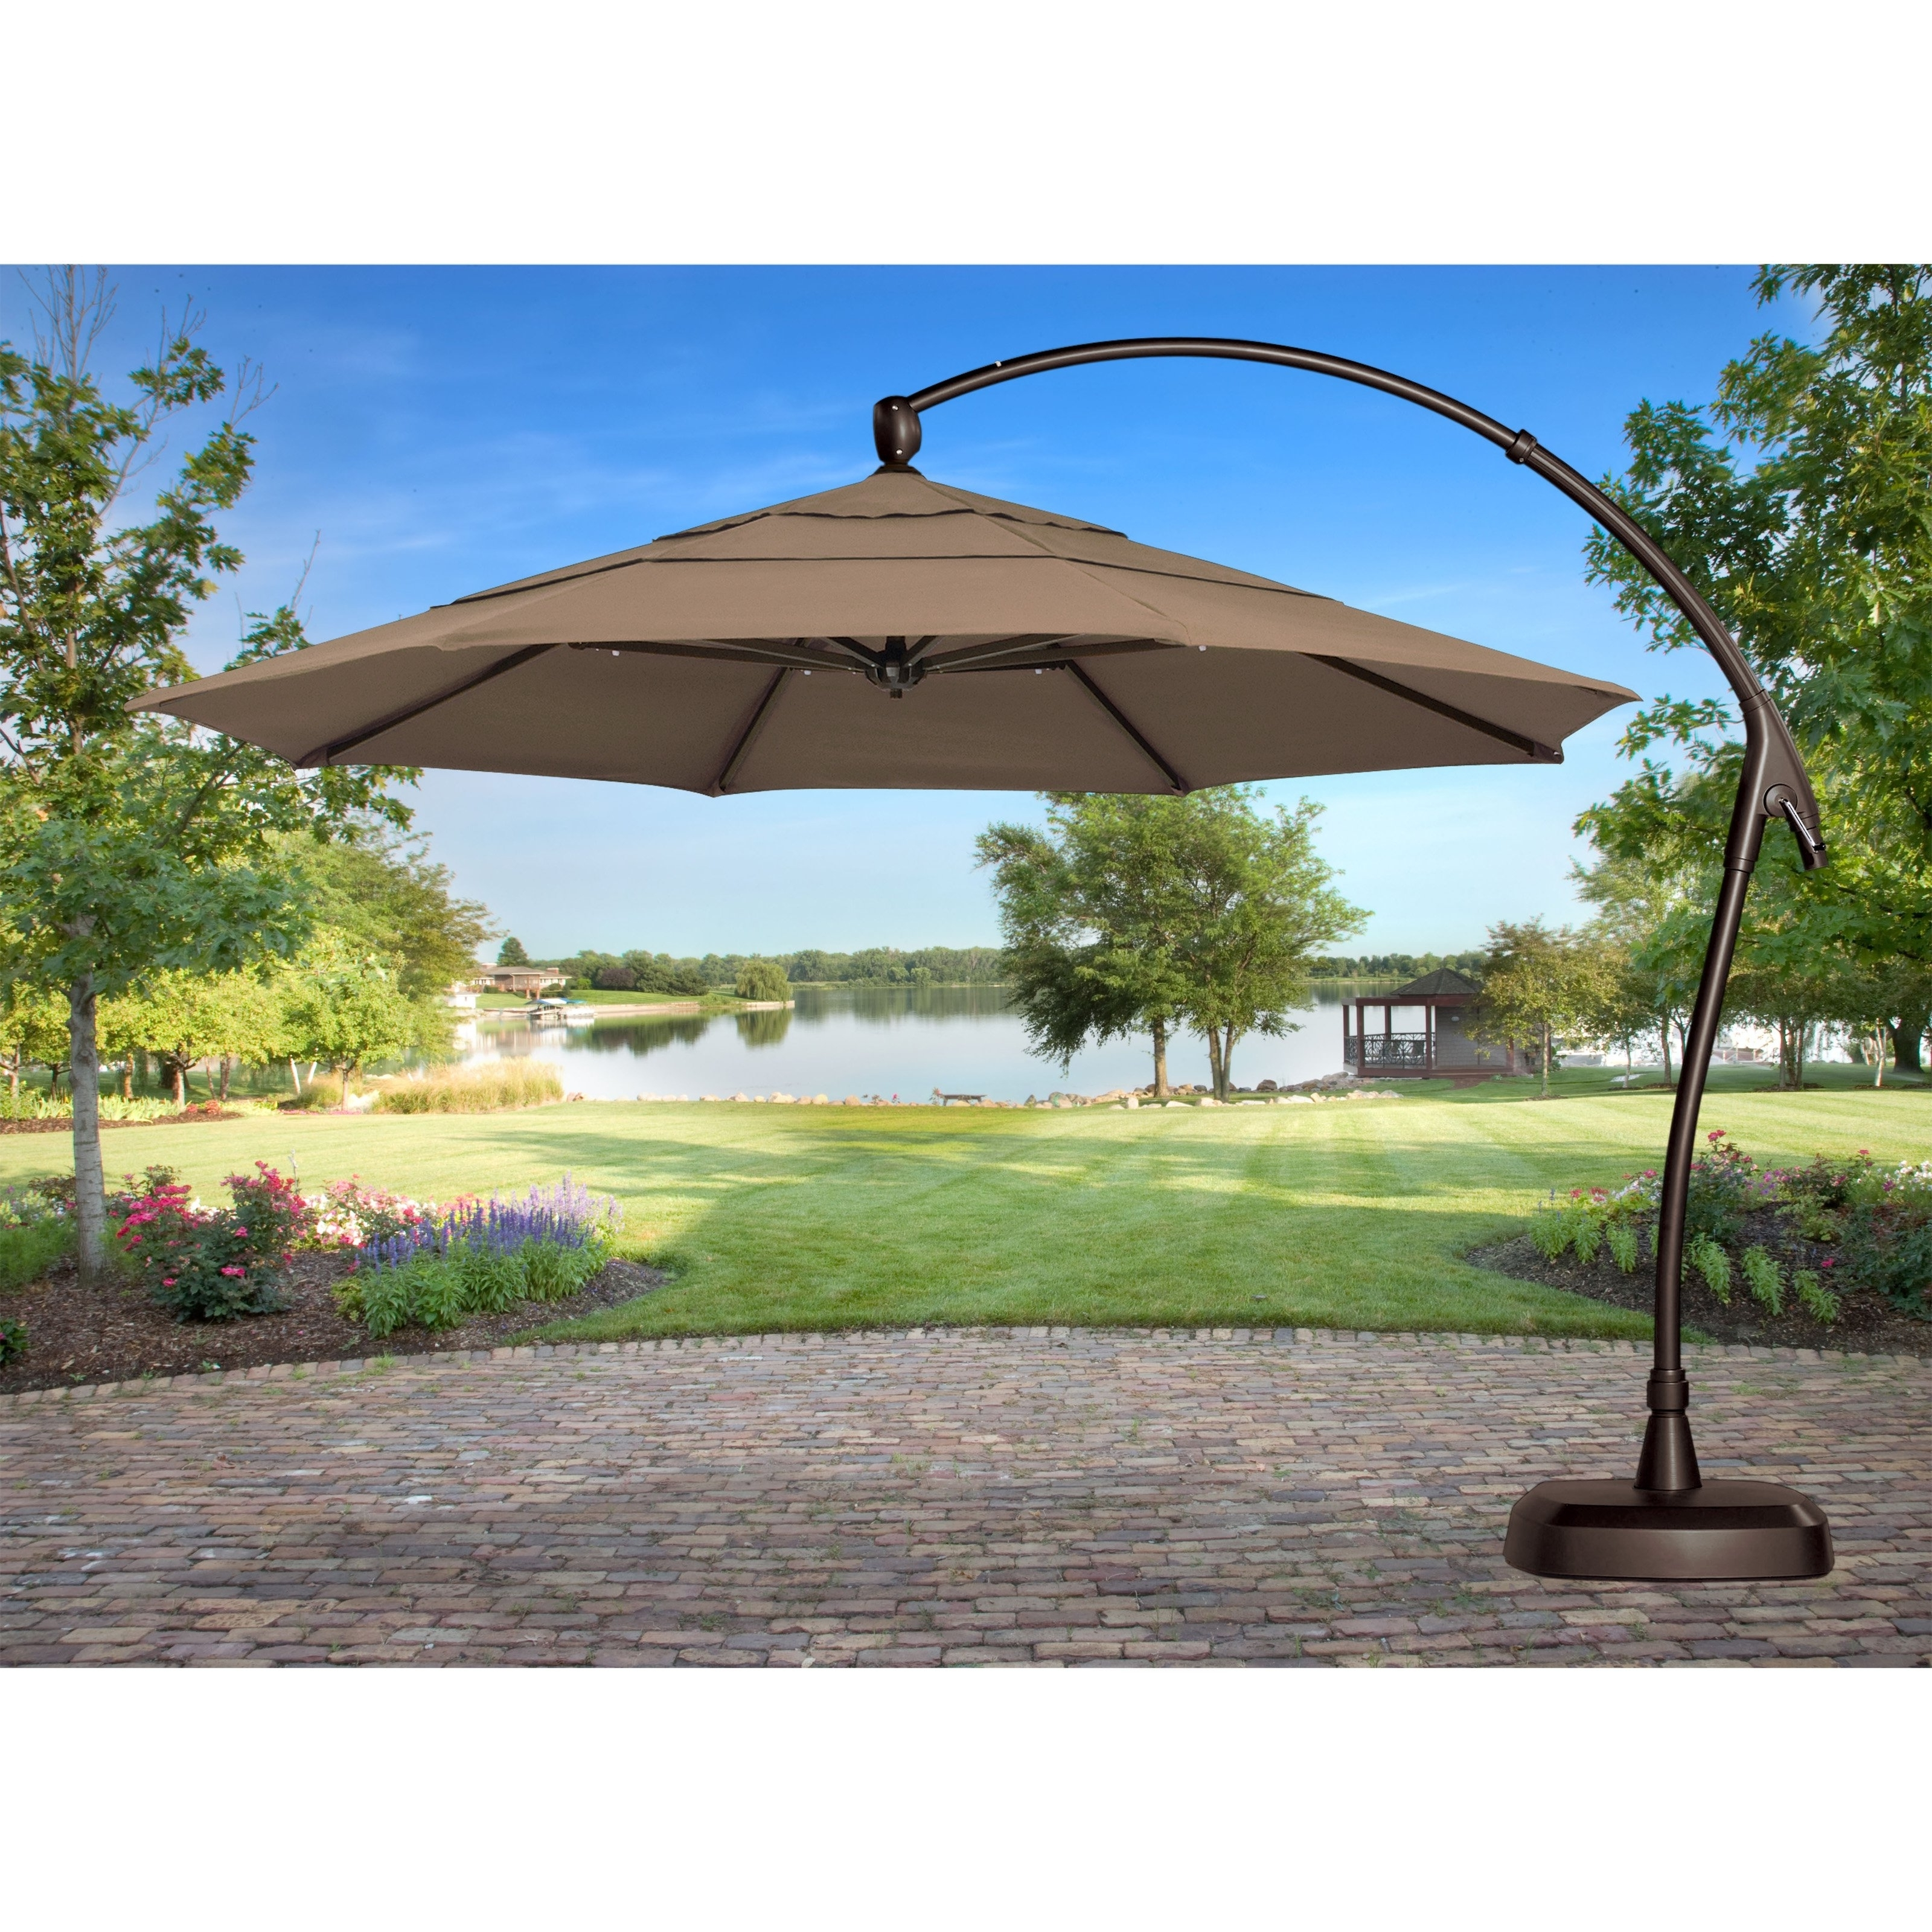 Well Known Patio Umbrellas At Home Depot With Regard To Cantilever Patio Umbrella Home Depot F41x About Remodel Most (View 9 of 20)